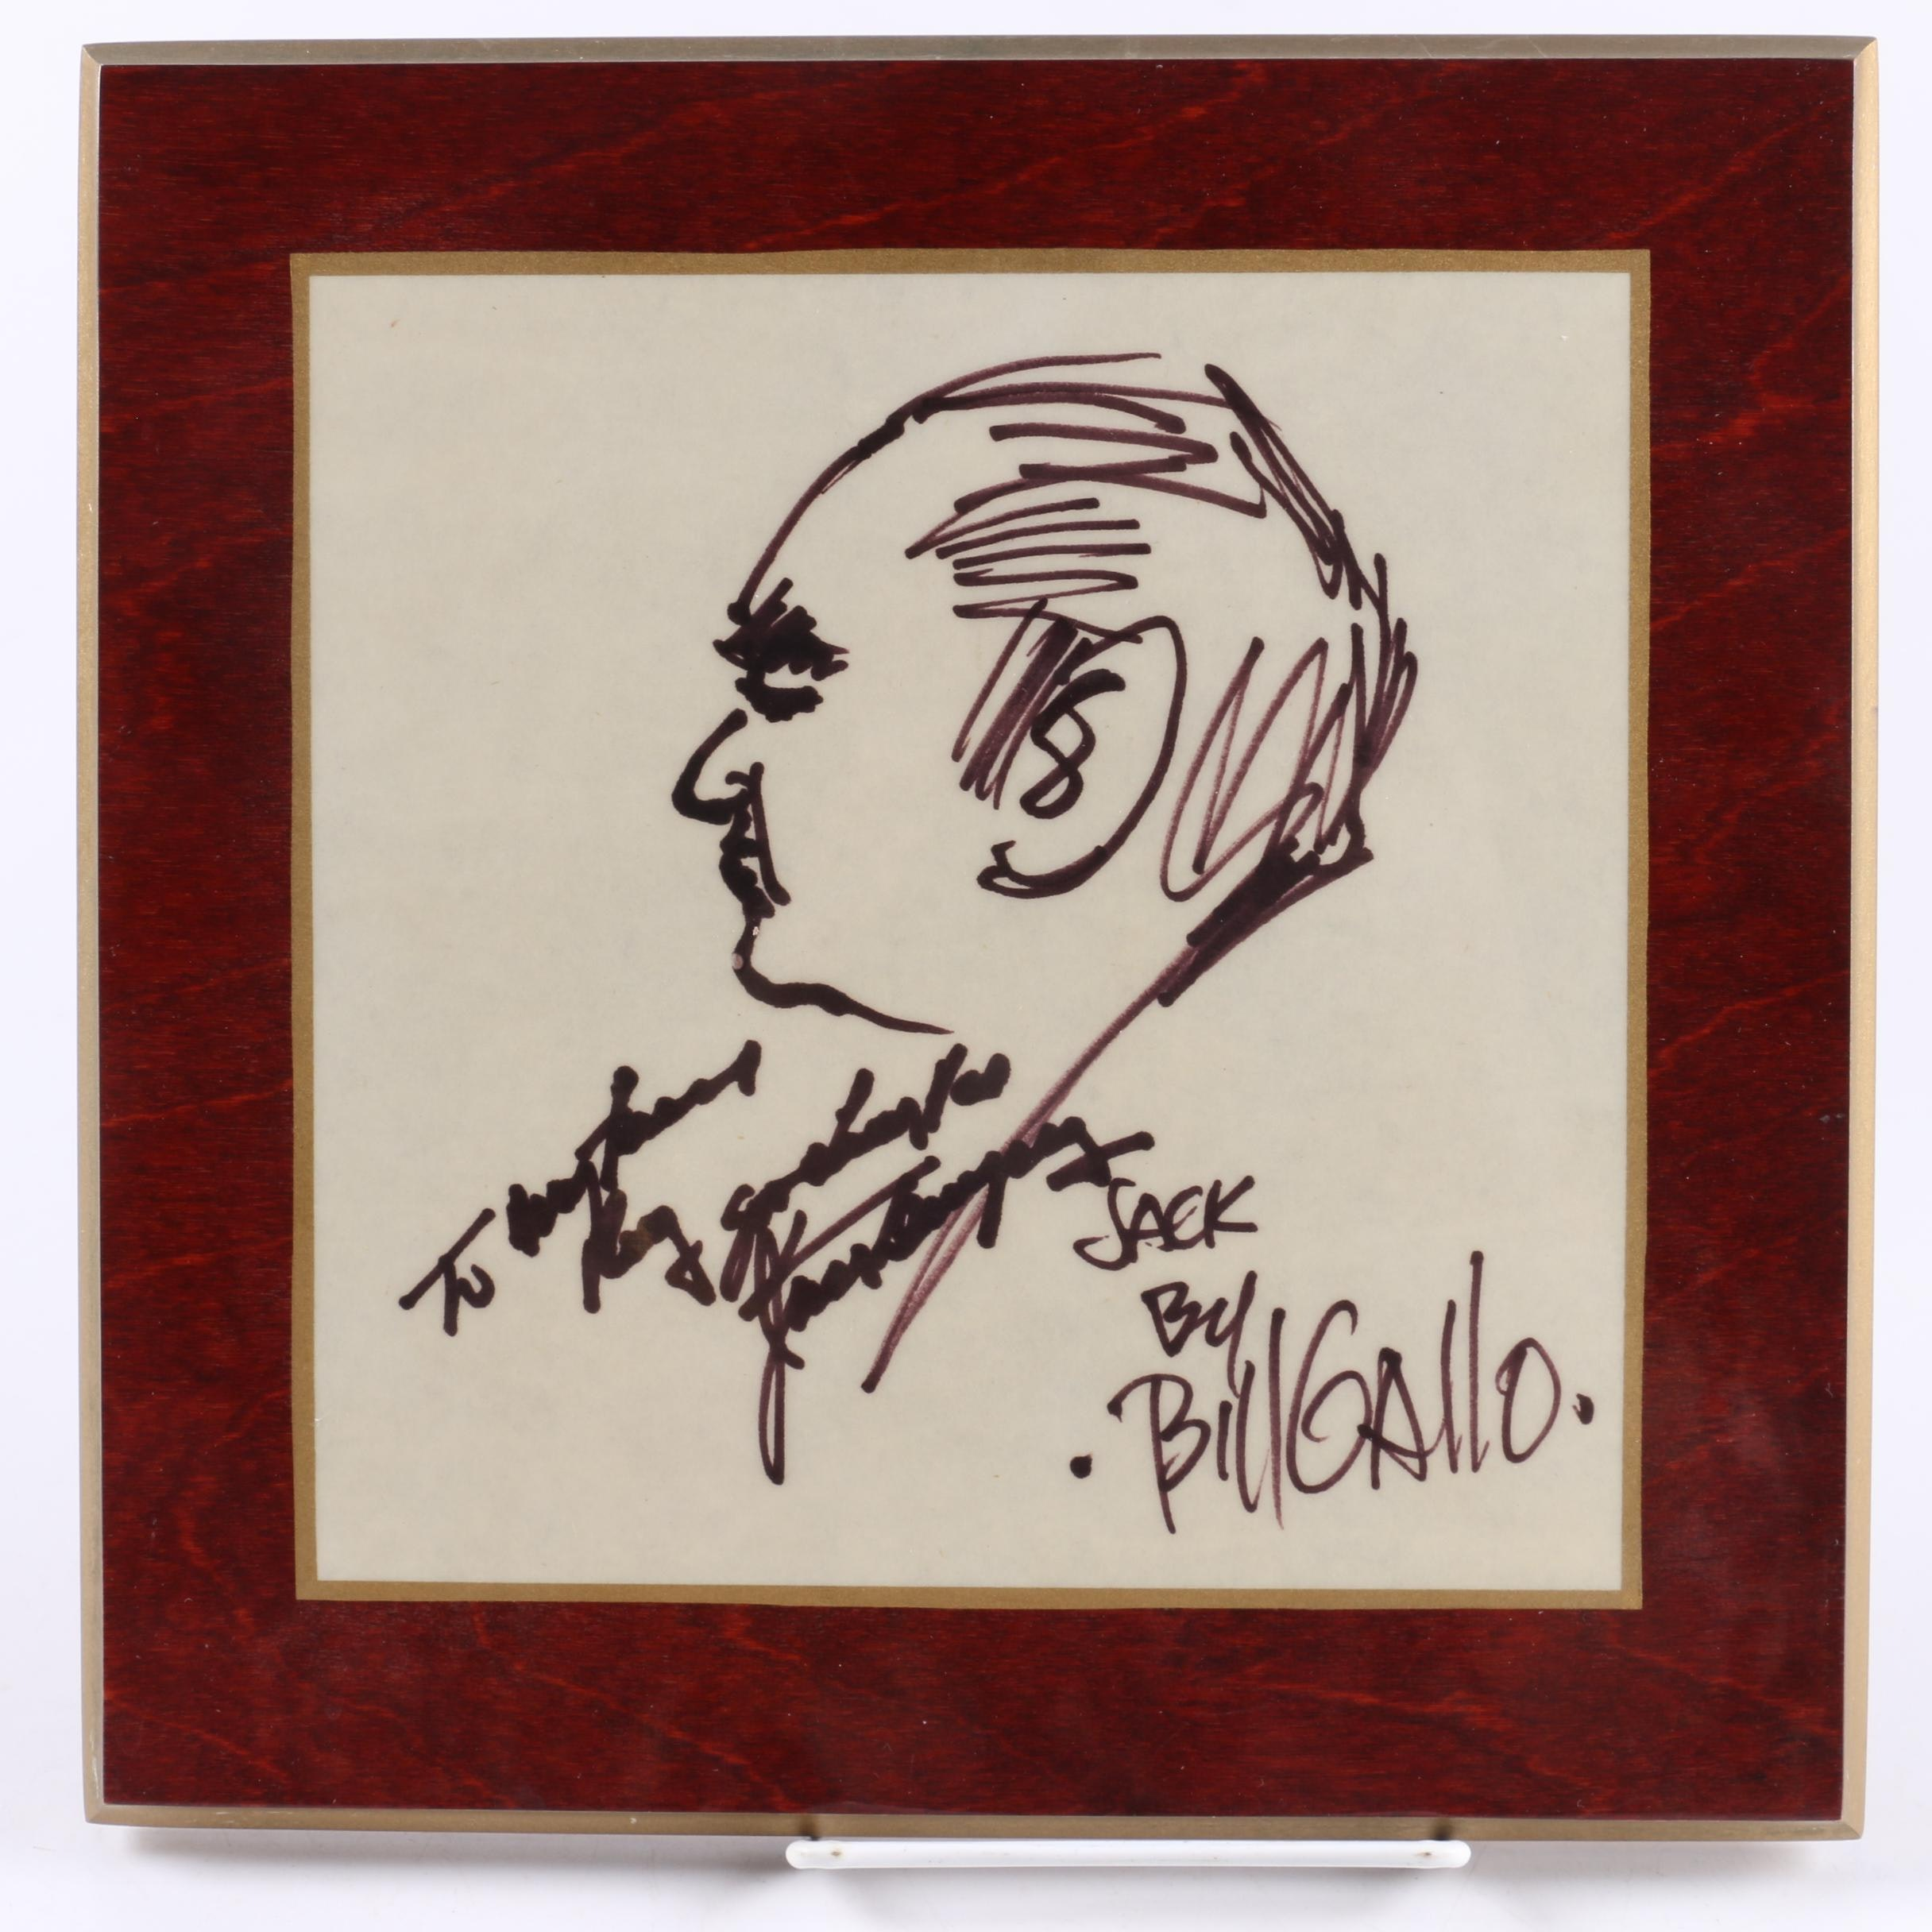 Jack Dempsey Autographed Drawing by Bill Gallo